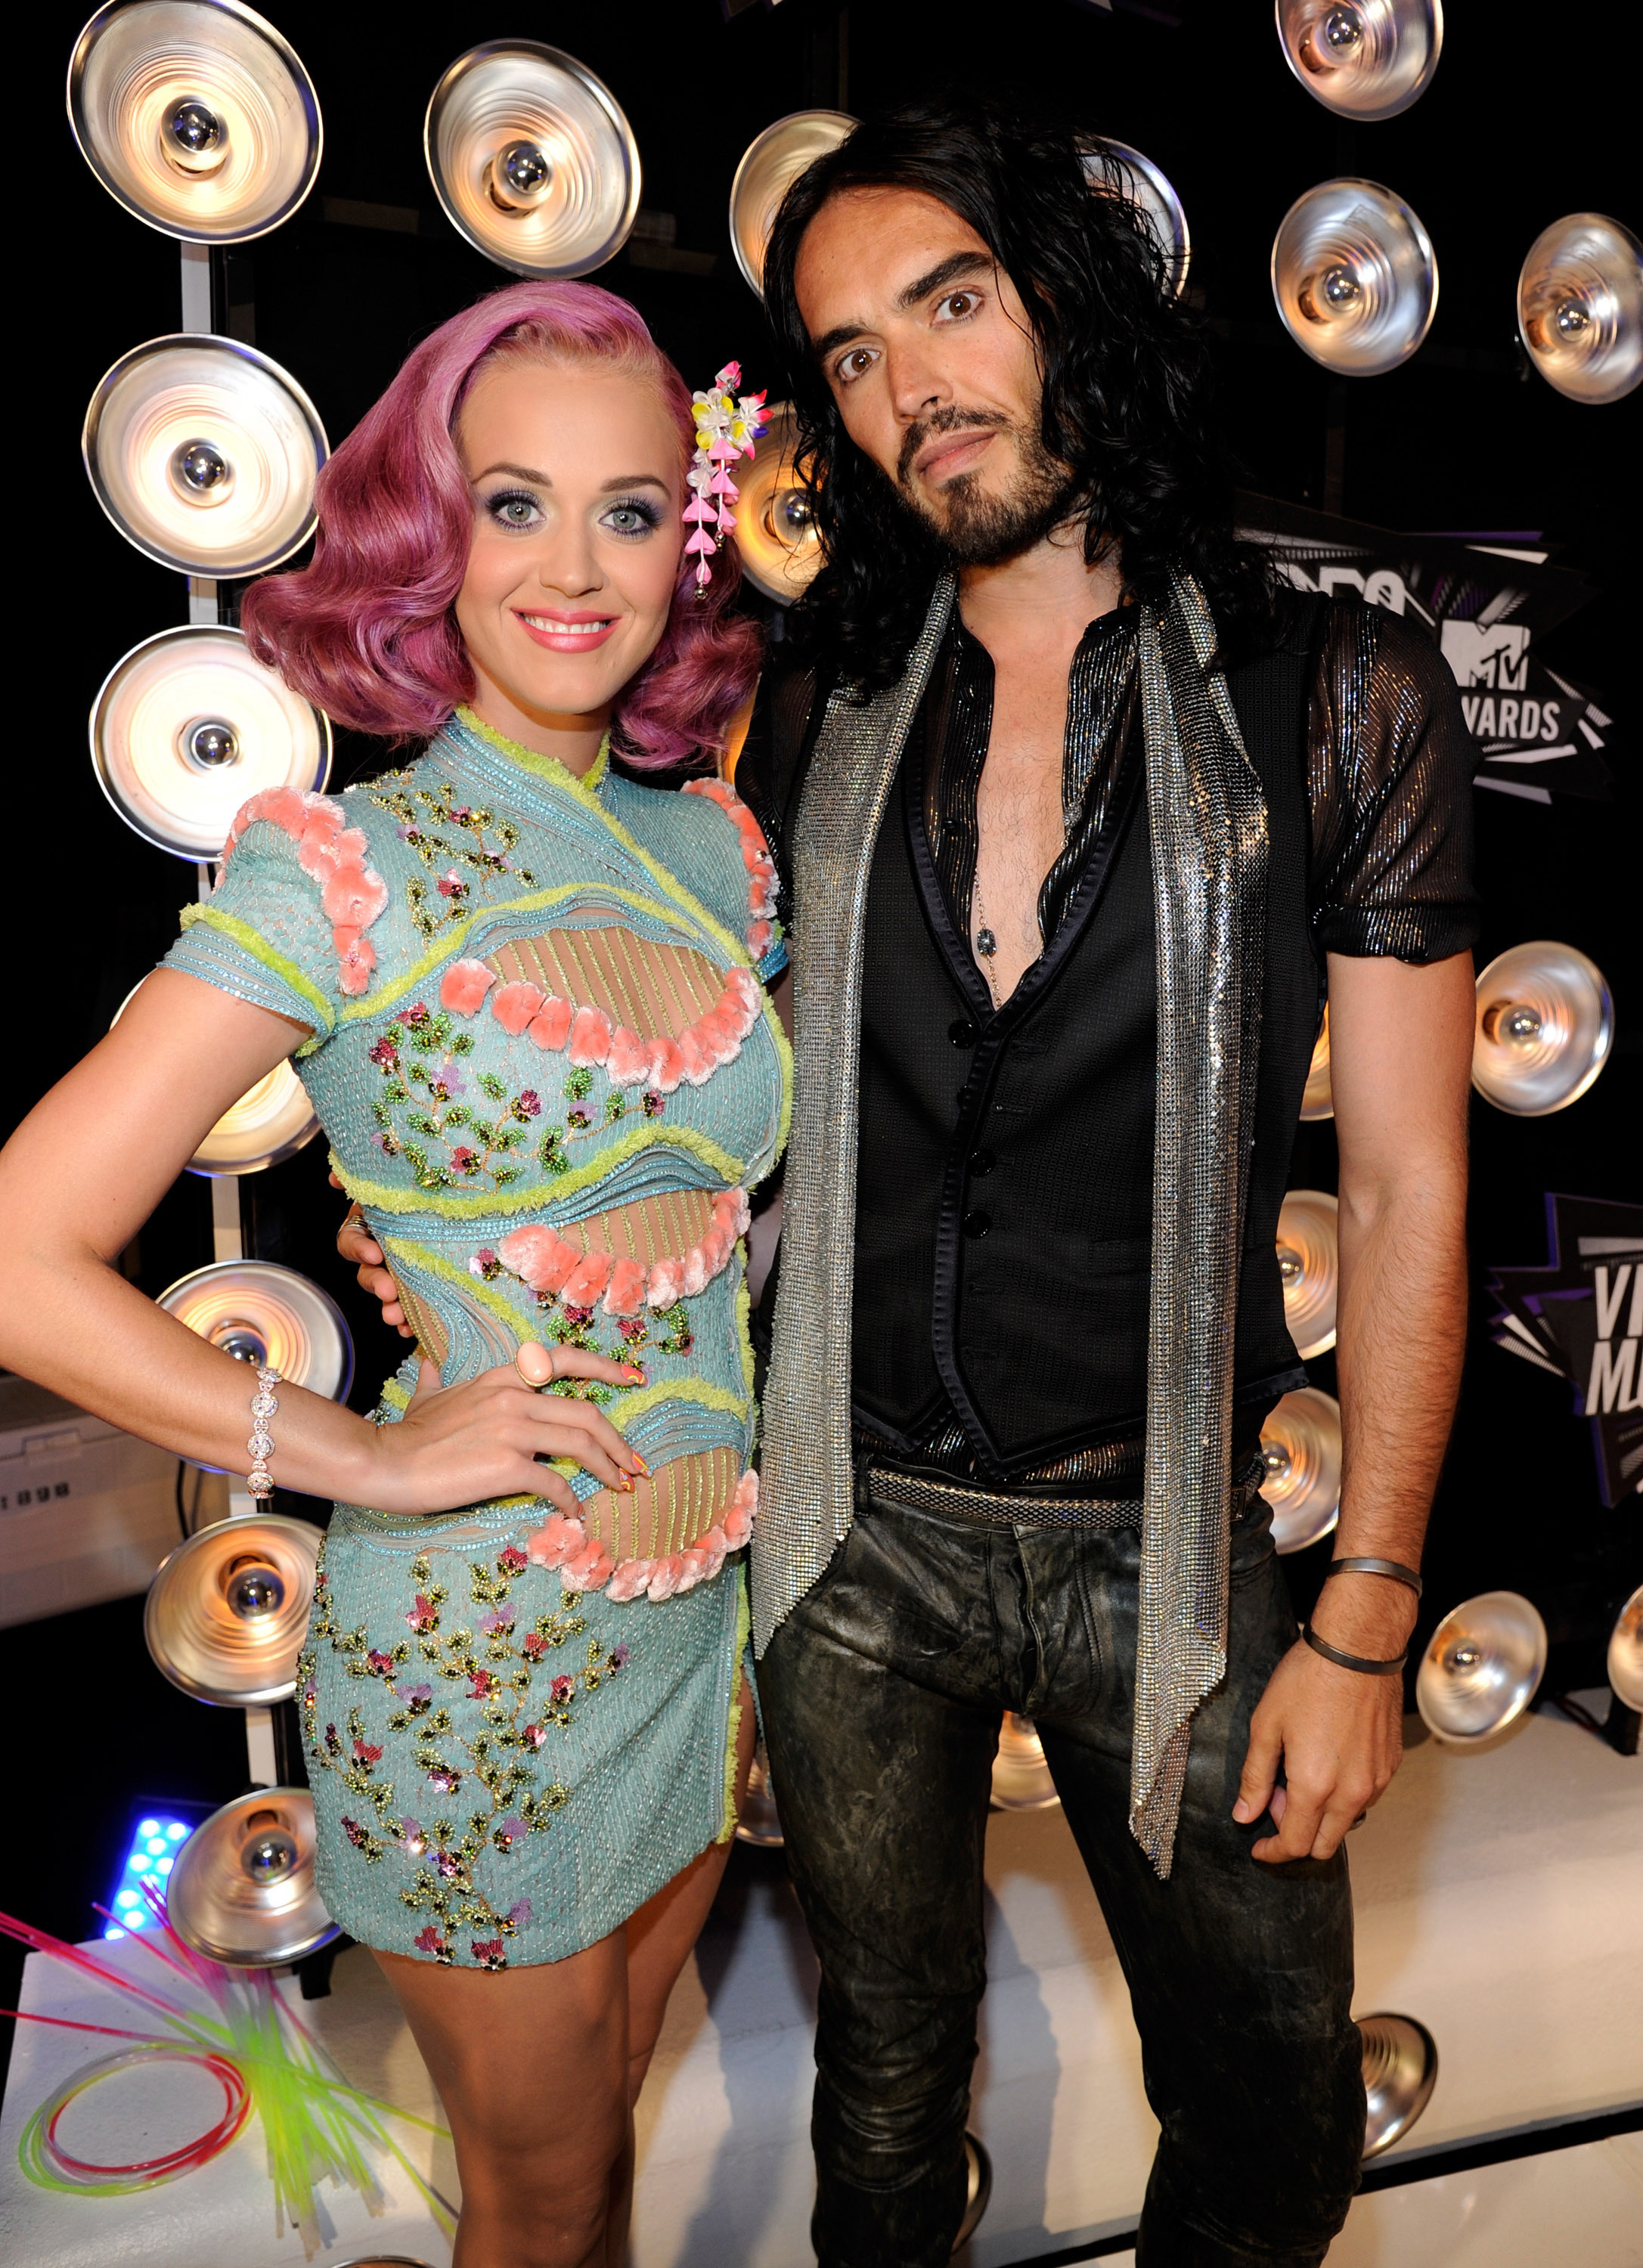 Katy Perry and Russell Brand: married for 14 months